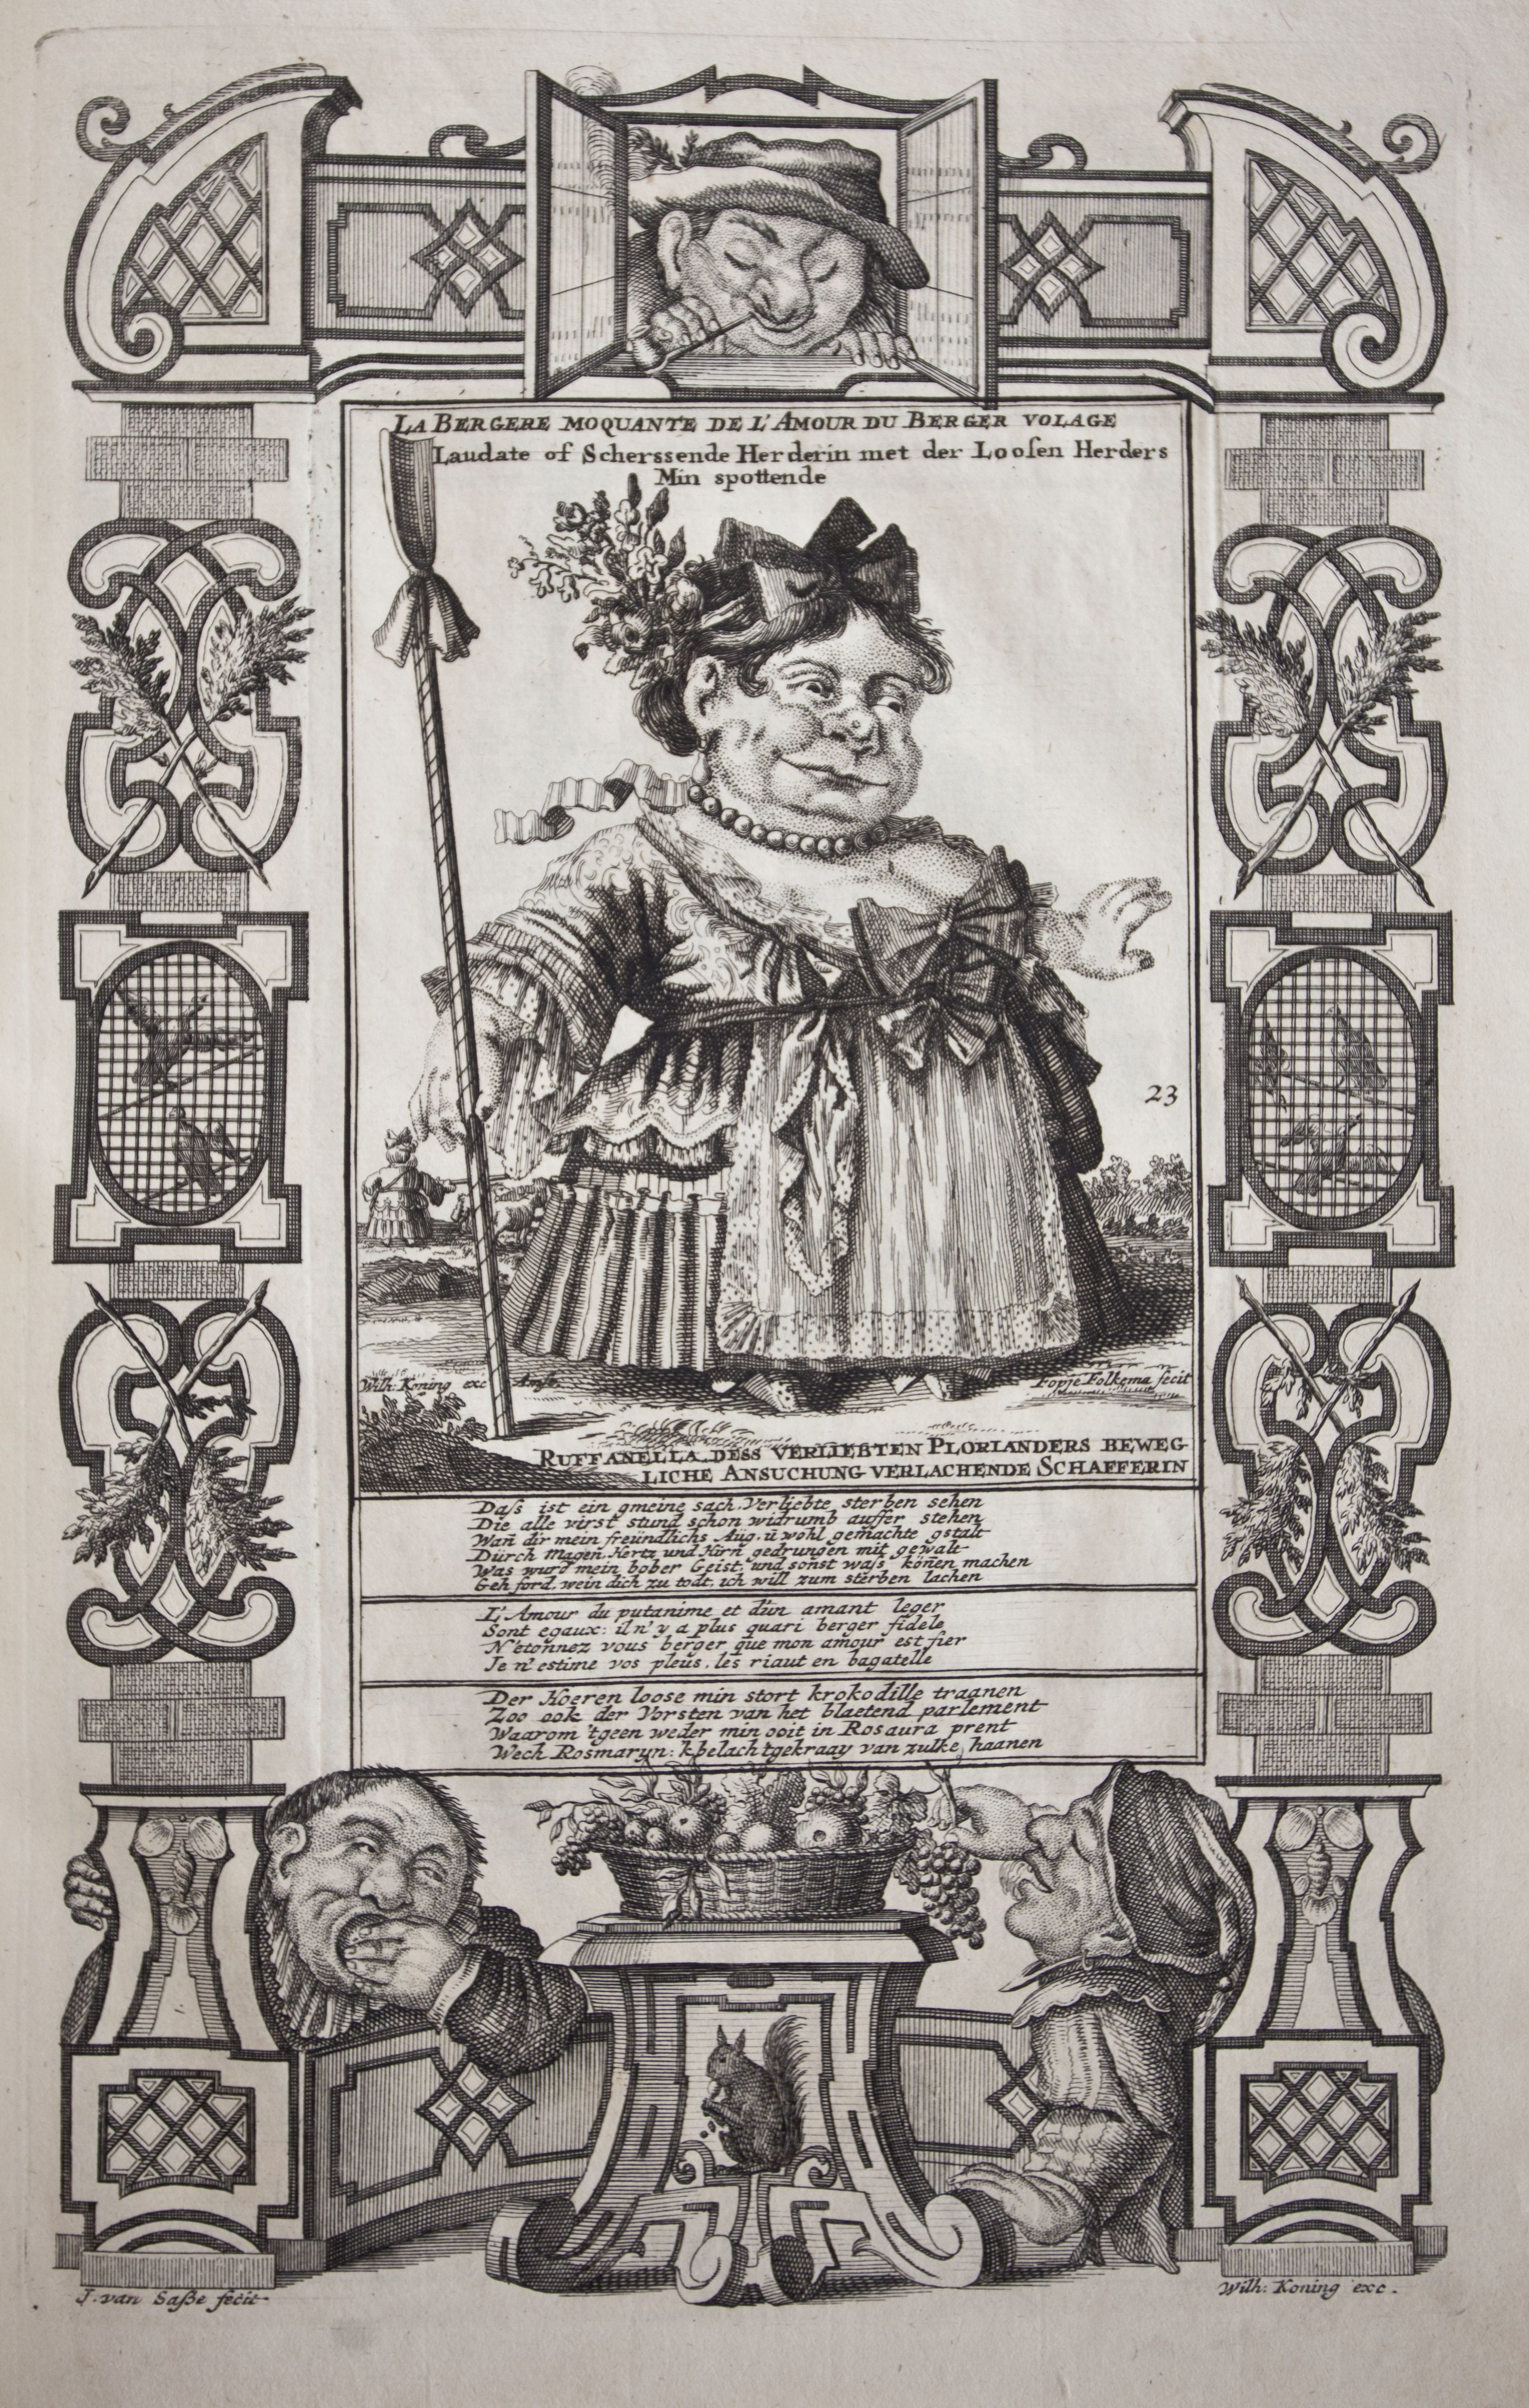 satire in the eighteenth century essay 18th century writers wanted to create literature for everyone (more than just intellectuals) what was the versification chosen (many poets adopted artificial poetic diction) versification chosen was heroic couplet (first choice) and blank verse (second choice.